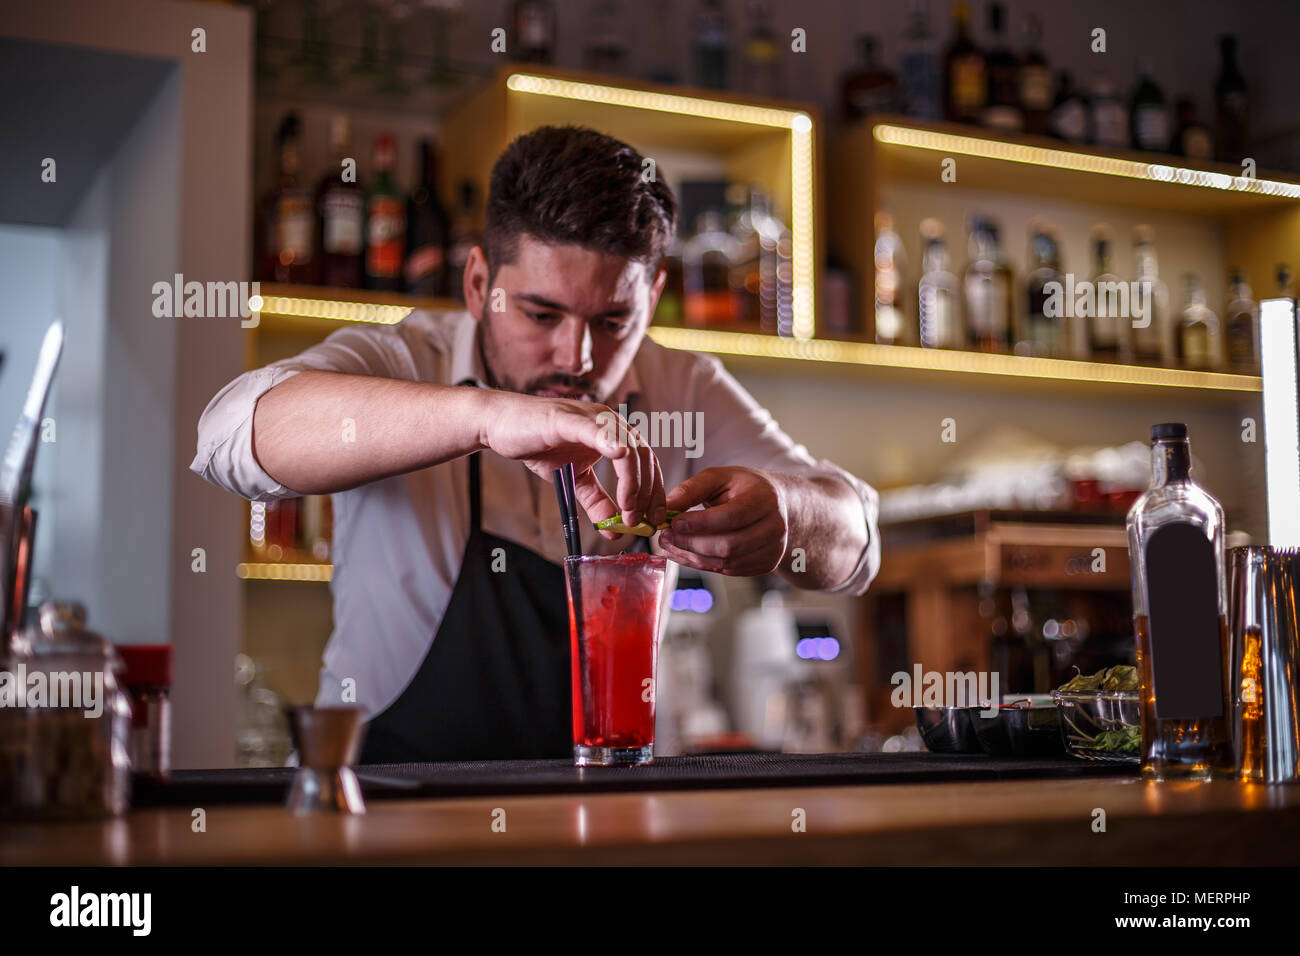 Bartender decorating non-alcoholic pomegranate cocktail with lime slices - Stock Image